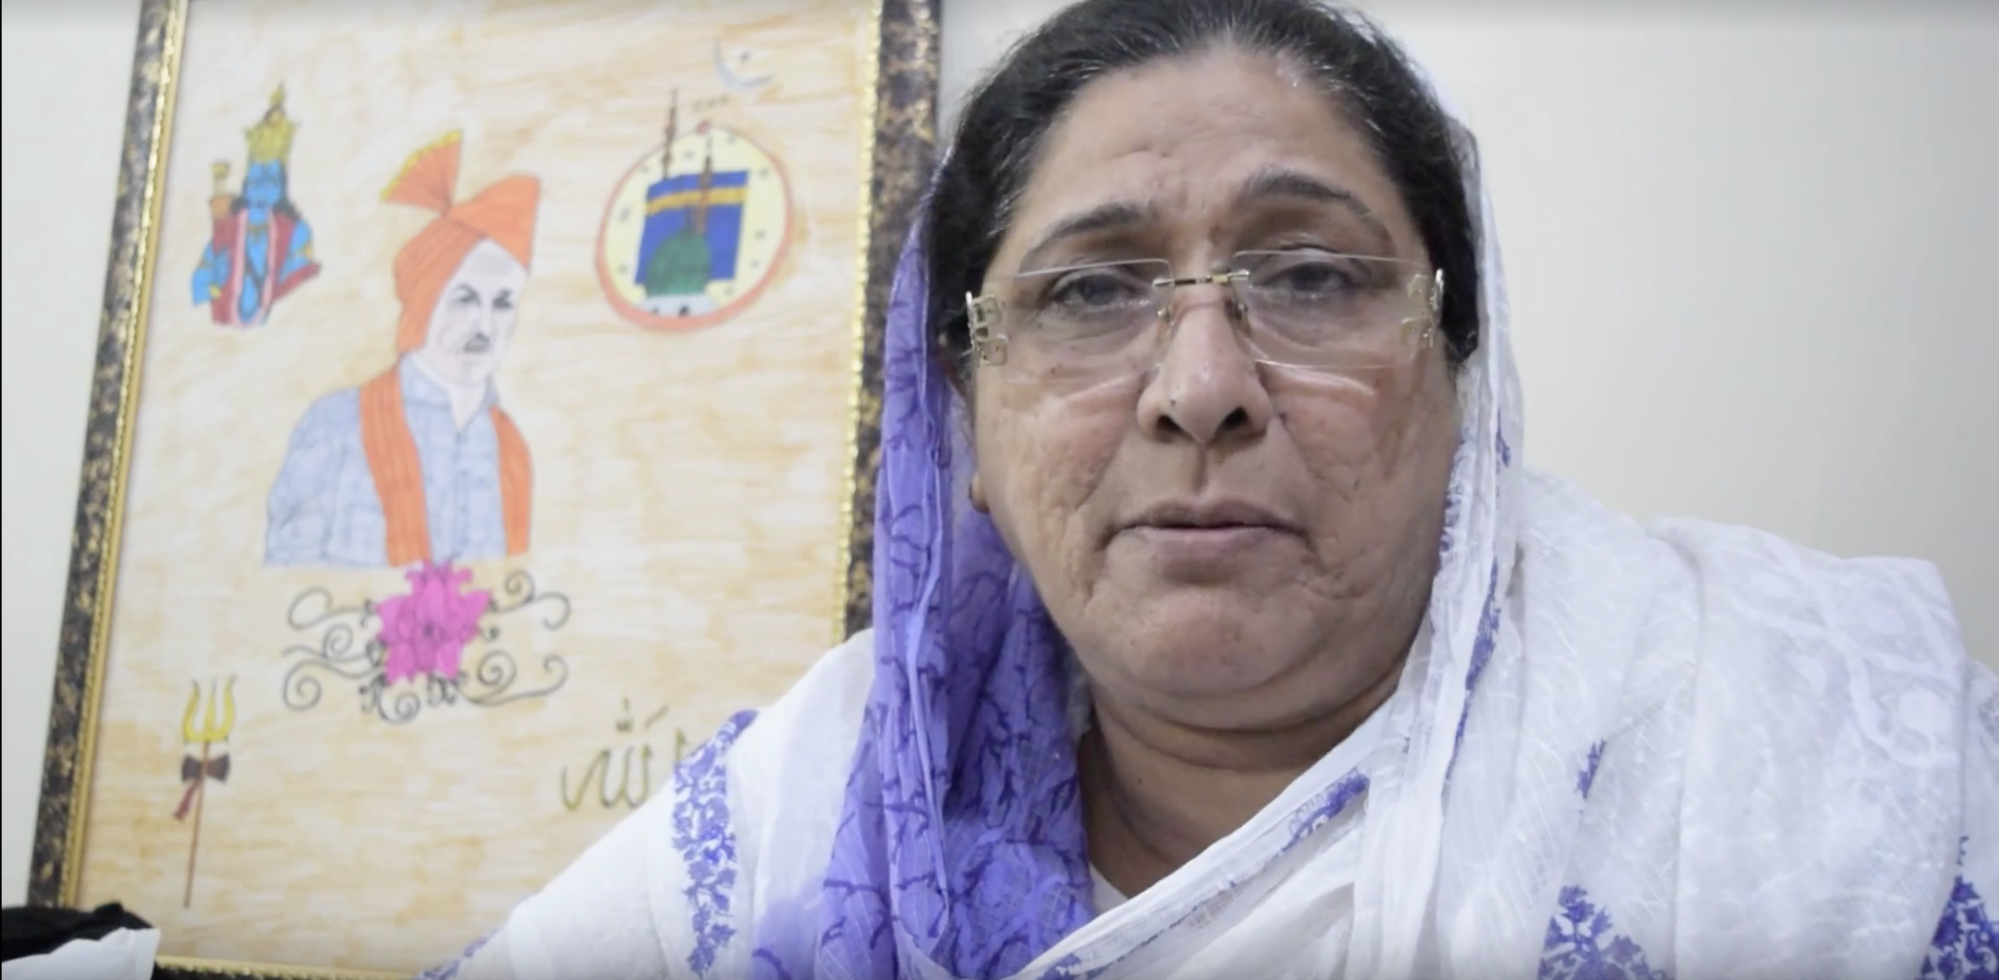 Shehnaz Afzal, head of the women's wing of the Muslim Rashtriya Manch, speaks in her office in Paharganj, Delhi. In the background, a student's illustration shows the Hindu god Ram (left), a mosque with the symbol for Islam (right) and a man donning a saffron turban (center), now generally a symbol of Hindu nationalism. Photo by Meagan Clark.